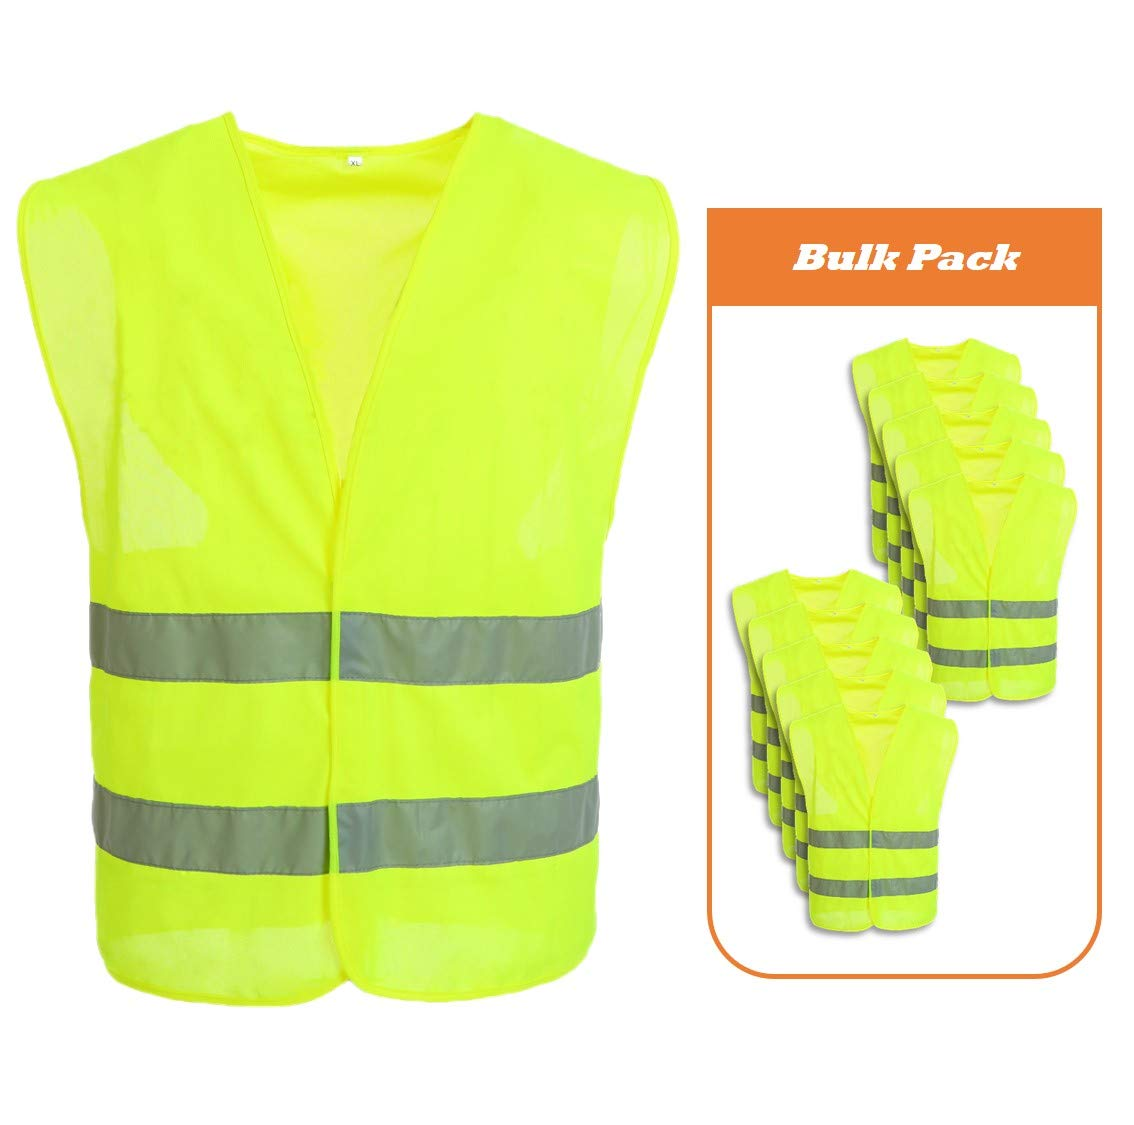 JKSafety 9 Pockets Class 2 High Visibility Zipper Front Safety Vest With Reflective Strips, Yellow Meets ANSI/ISEA Standards (X-Large) 51112XL